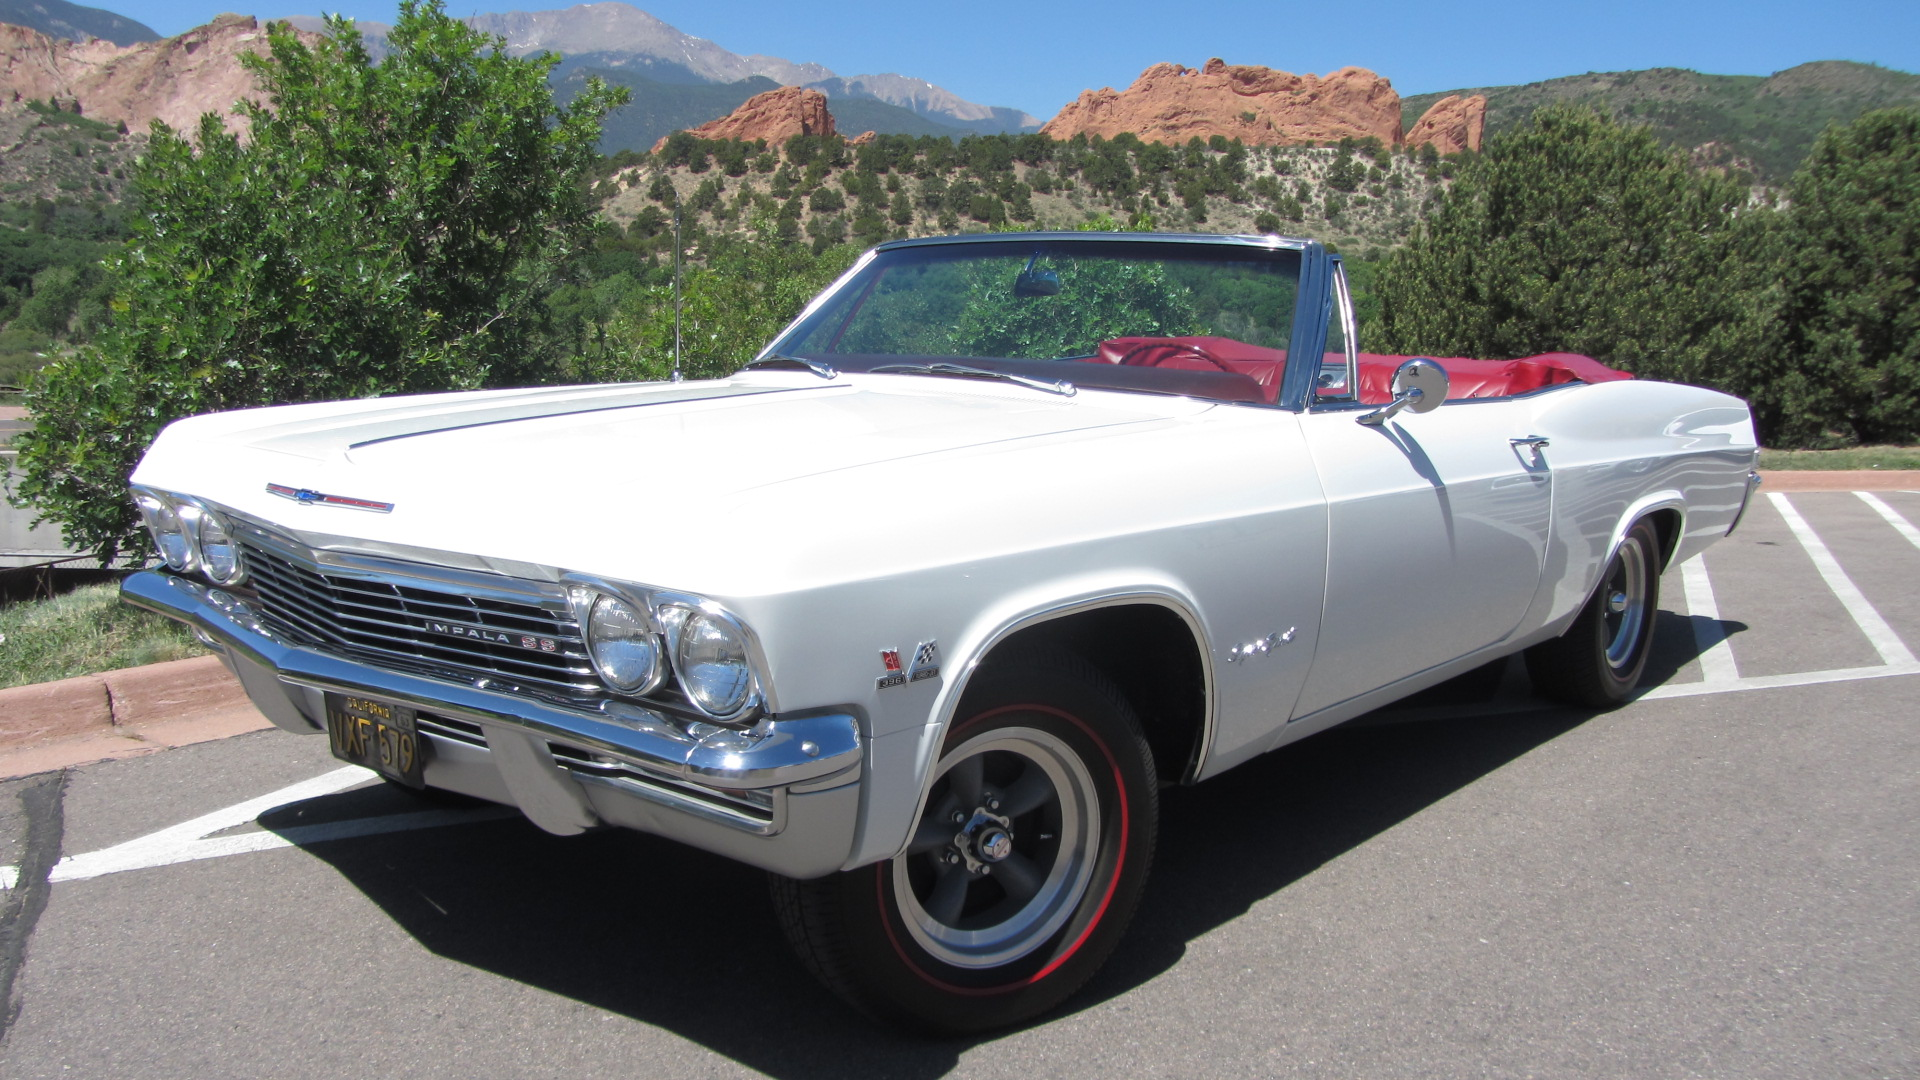 hight resolution of 1965 chevrolet impala convertible ss 396 4 speed for sale on bat auctions sold for 34 500 on june 26 2018 lot 10 508 bring a trailer